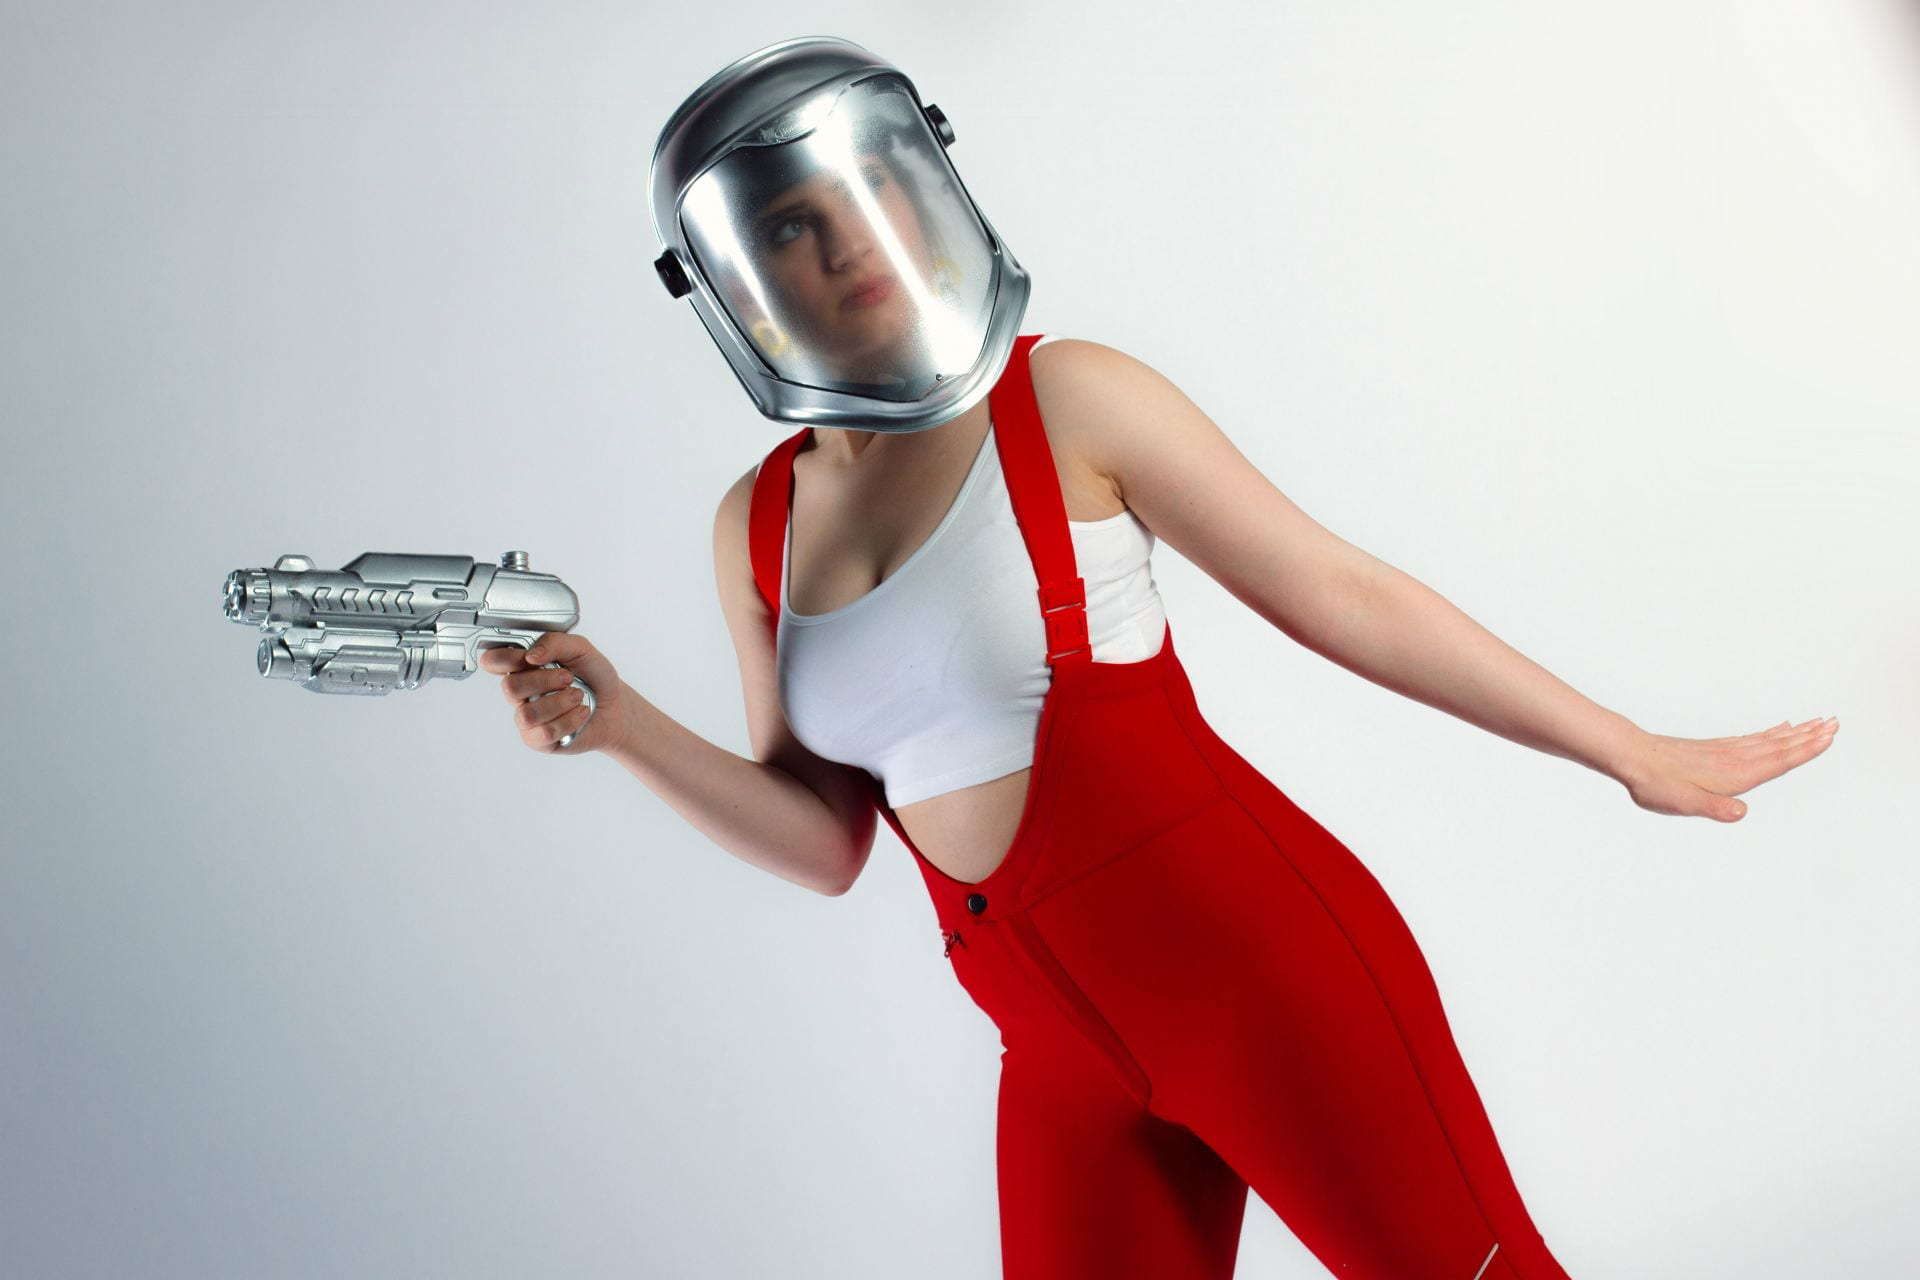 A woman in red dungarees and wearing a gas-mask, holding up a silver laser-gun.